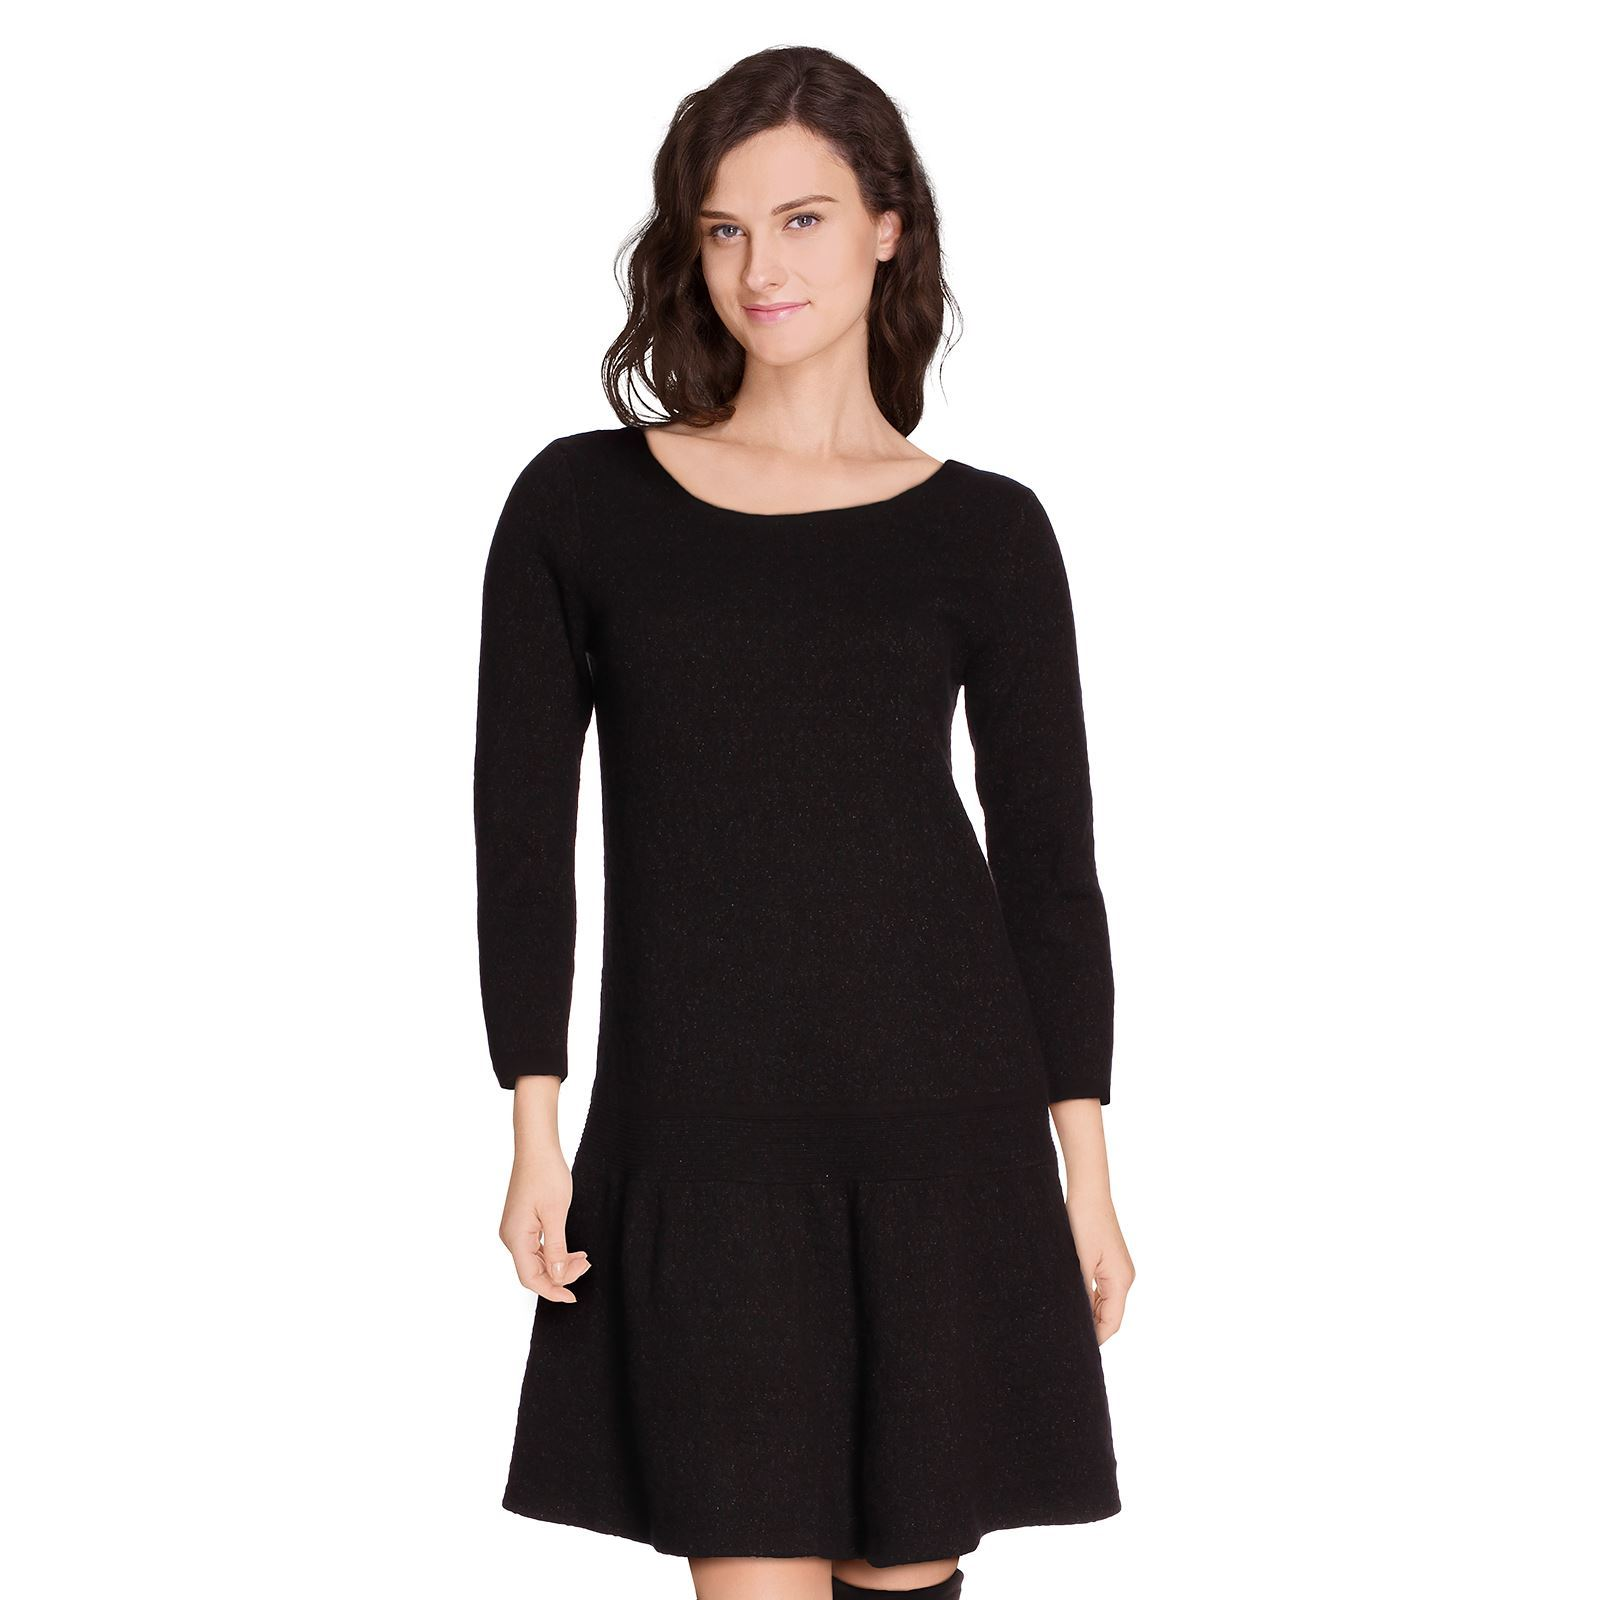 Comptoir des cotonniers siroter robe pull noir - Robe patineuse comptoir des cotonniers ...